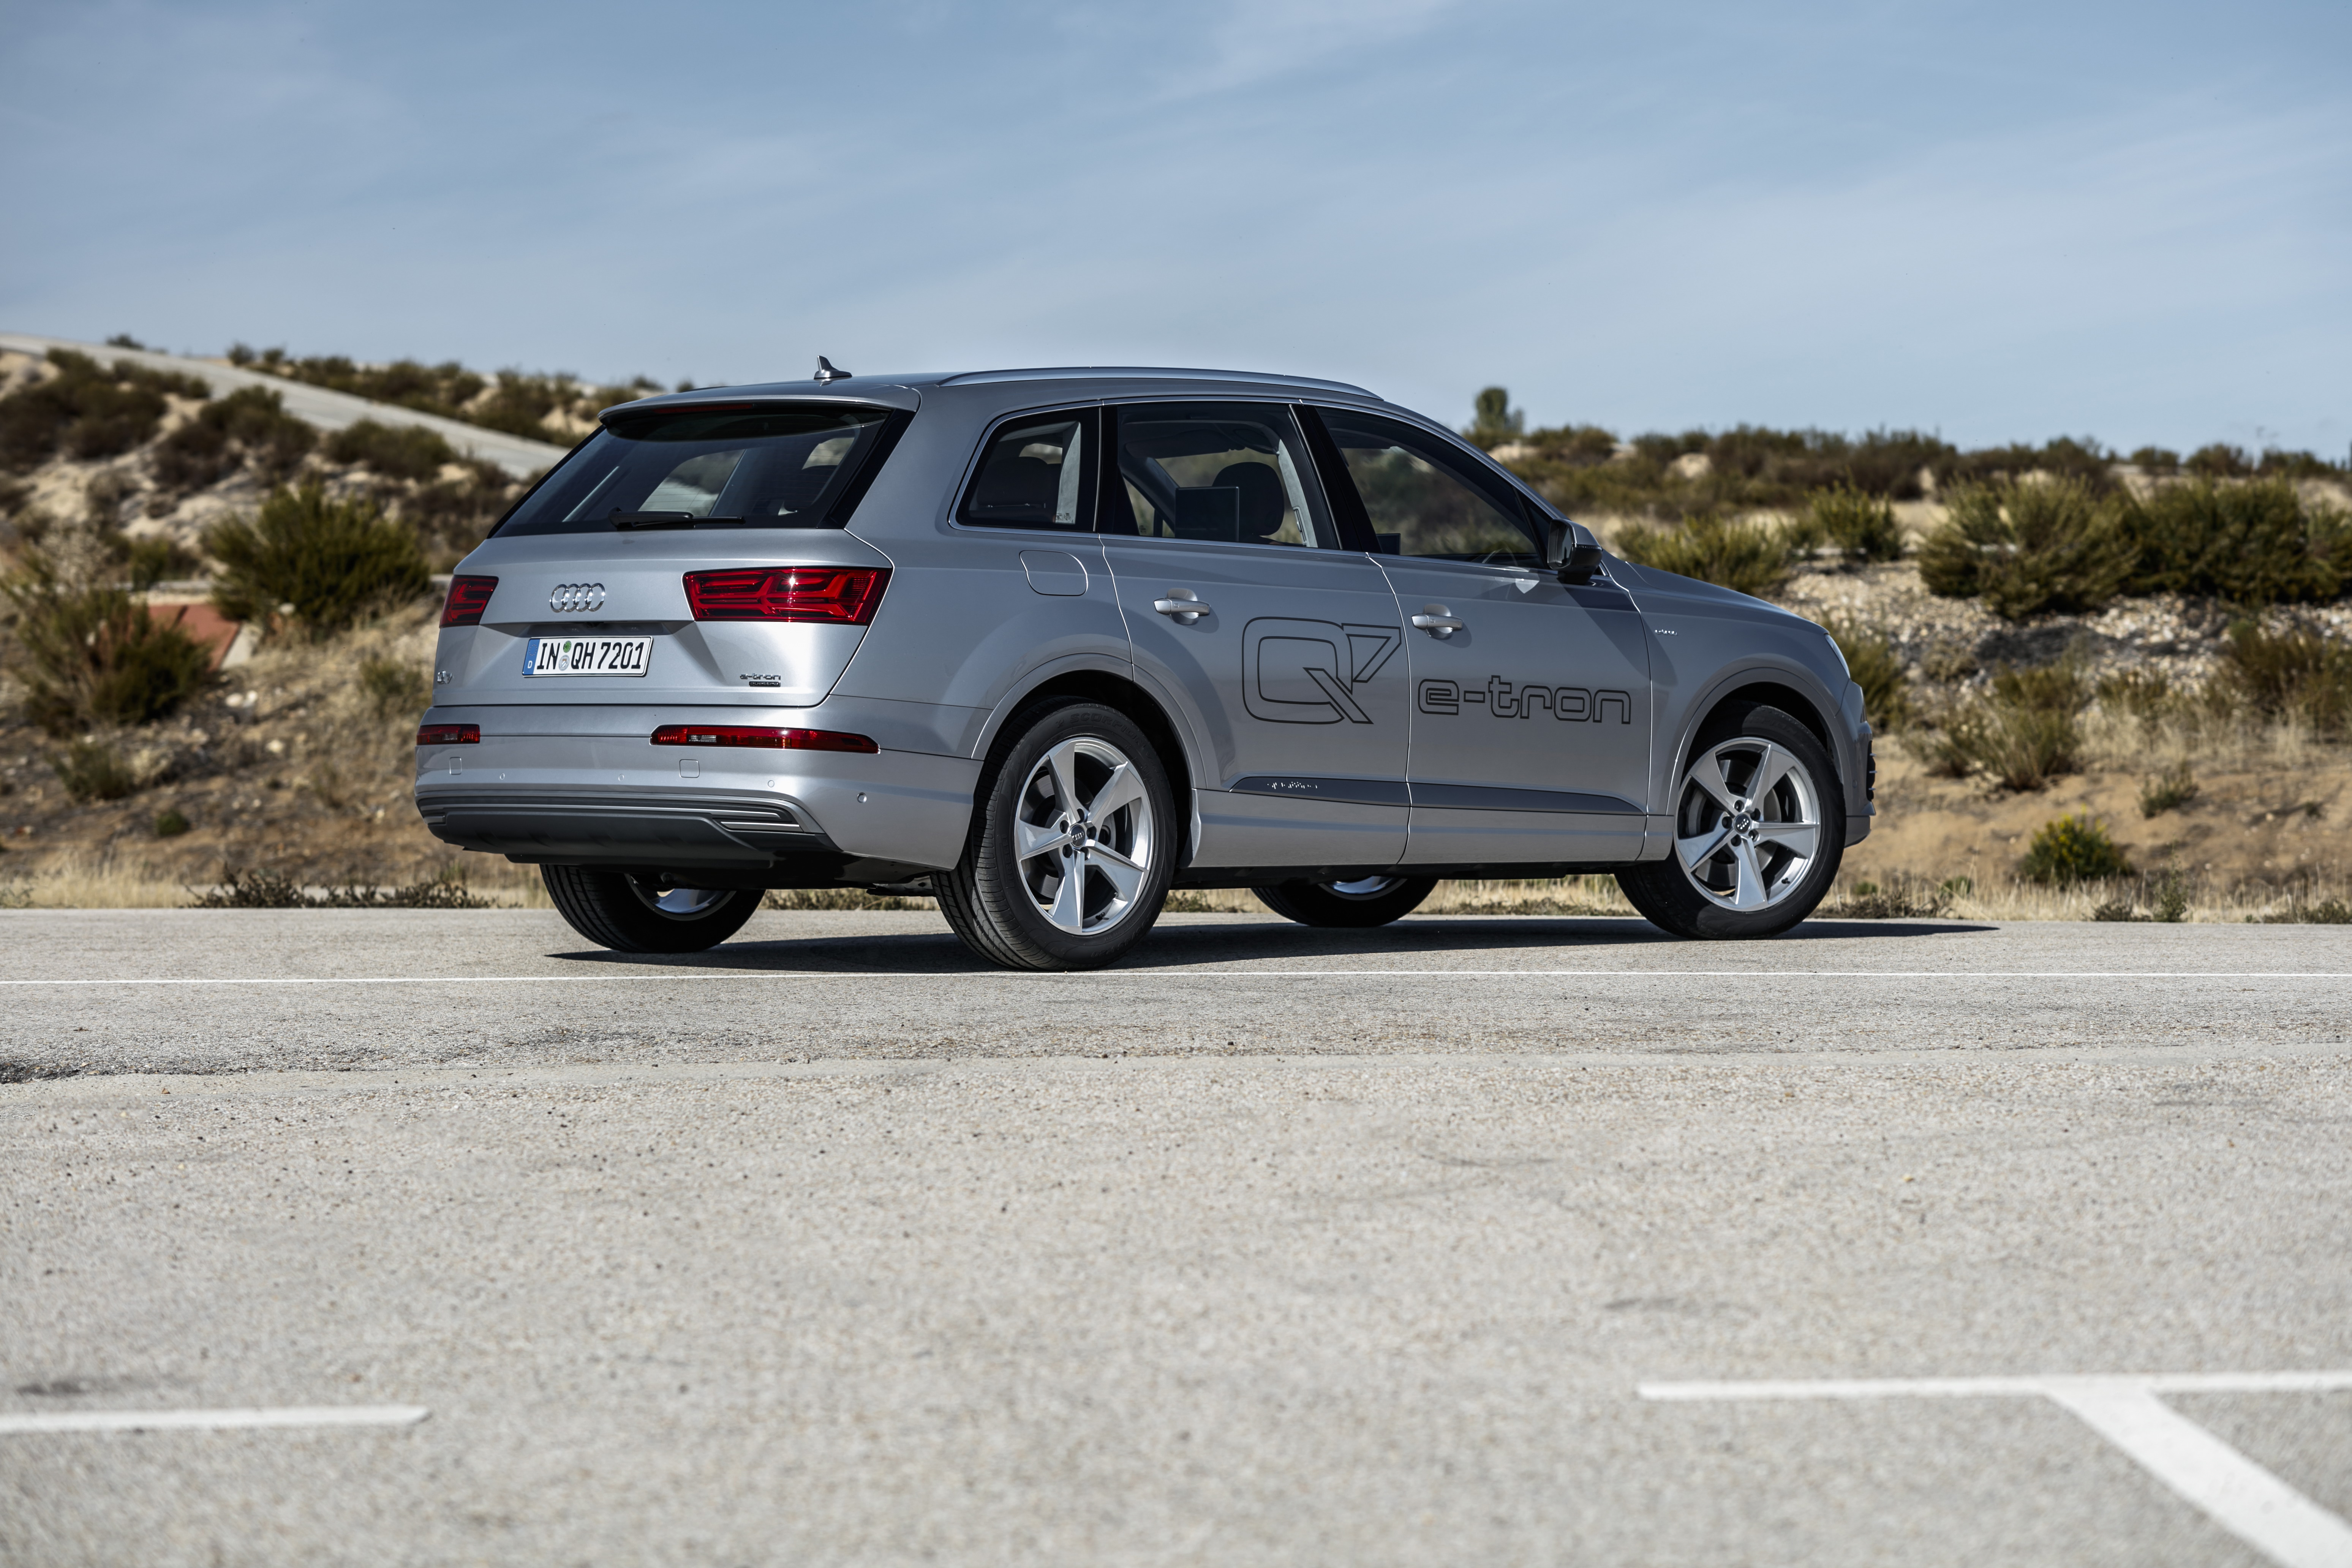 audi q7 e tron 3 0 tdi quattro autotest voorbeeldige hybride. Black Bedroom Furniture Sets. Home Design Ideas